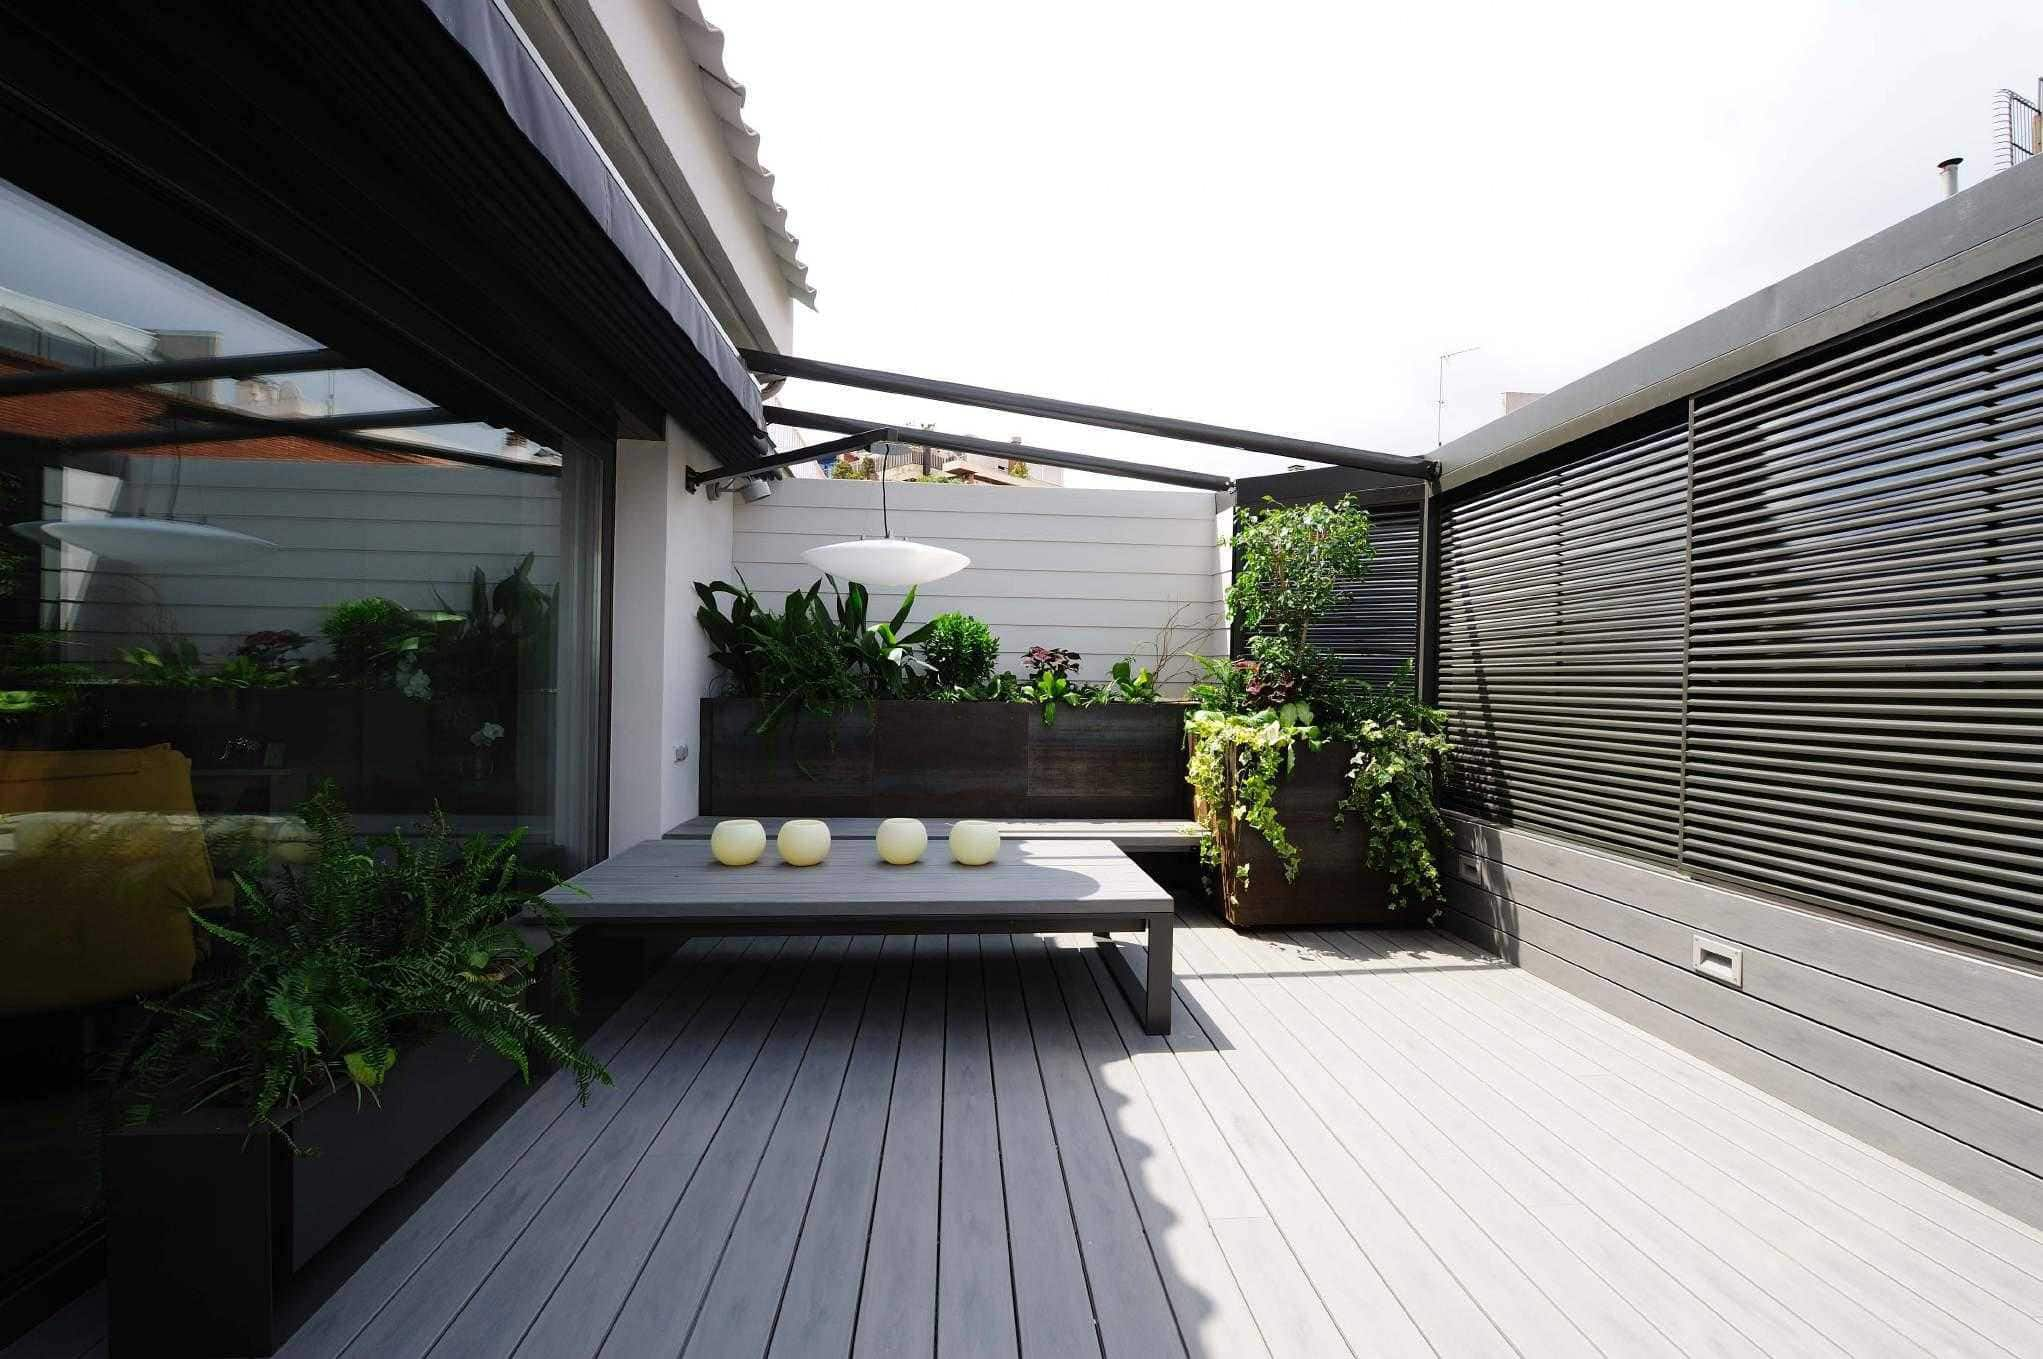 Advantages And Disadvantages Of Closing The Terrace Or Balcony